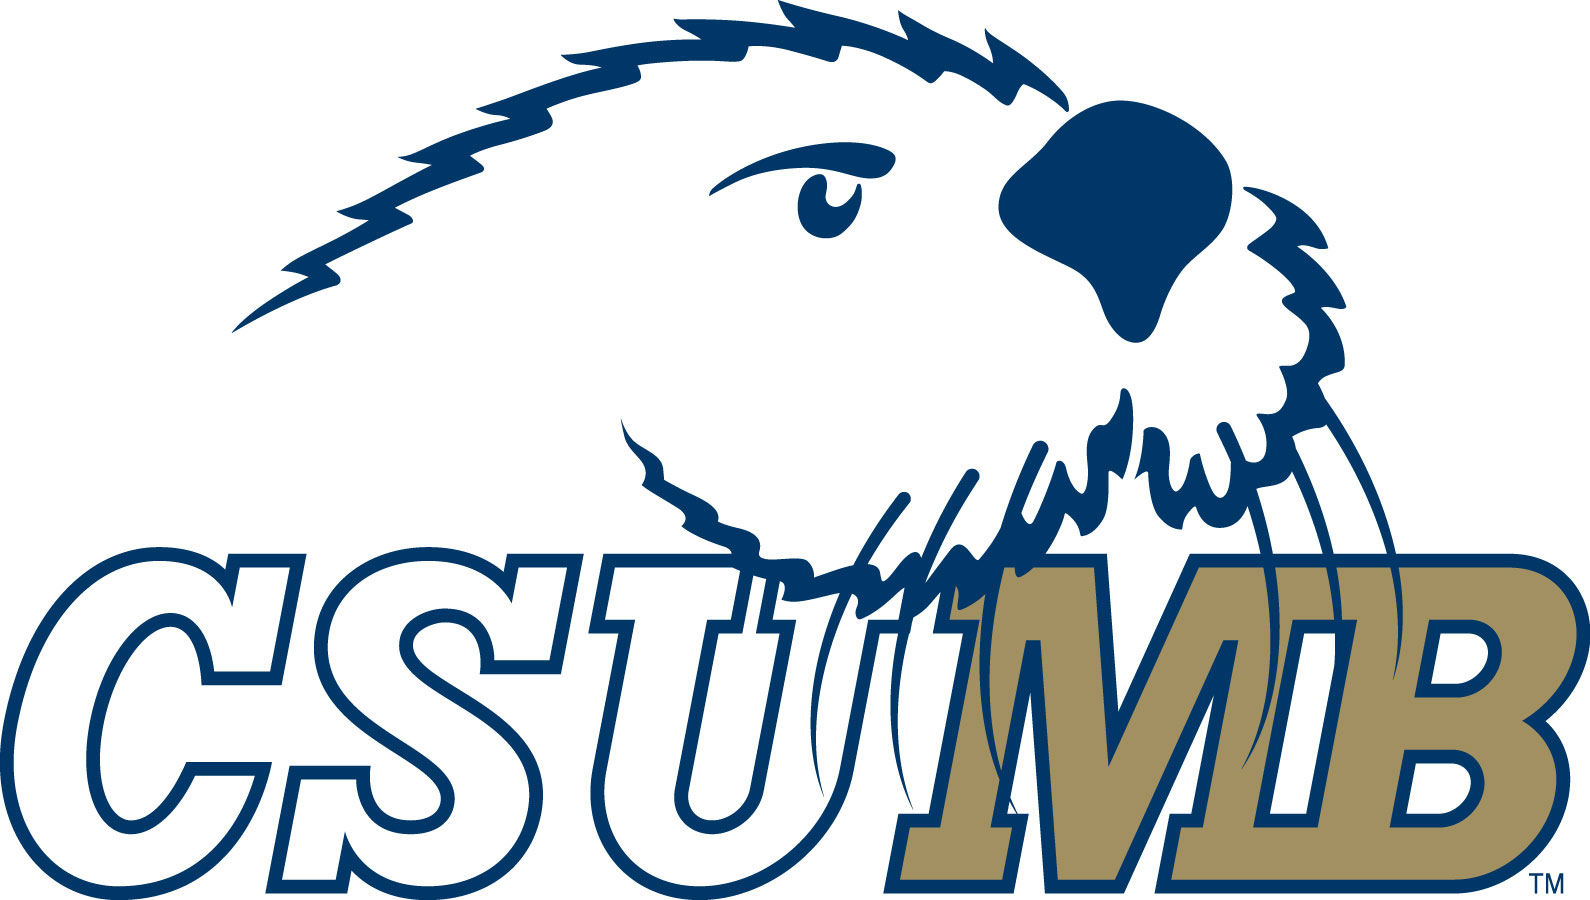 California State University - Monterey Bay Logo photo - 1